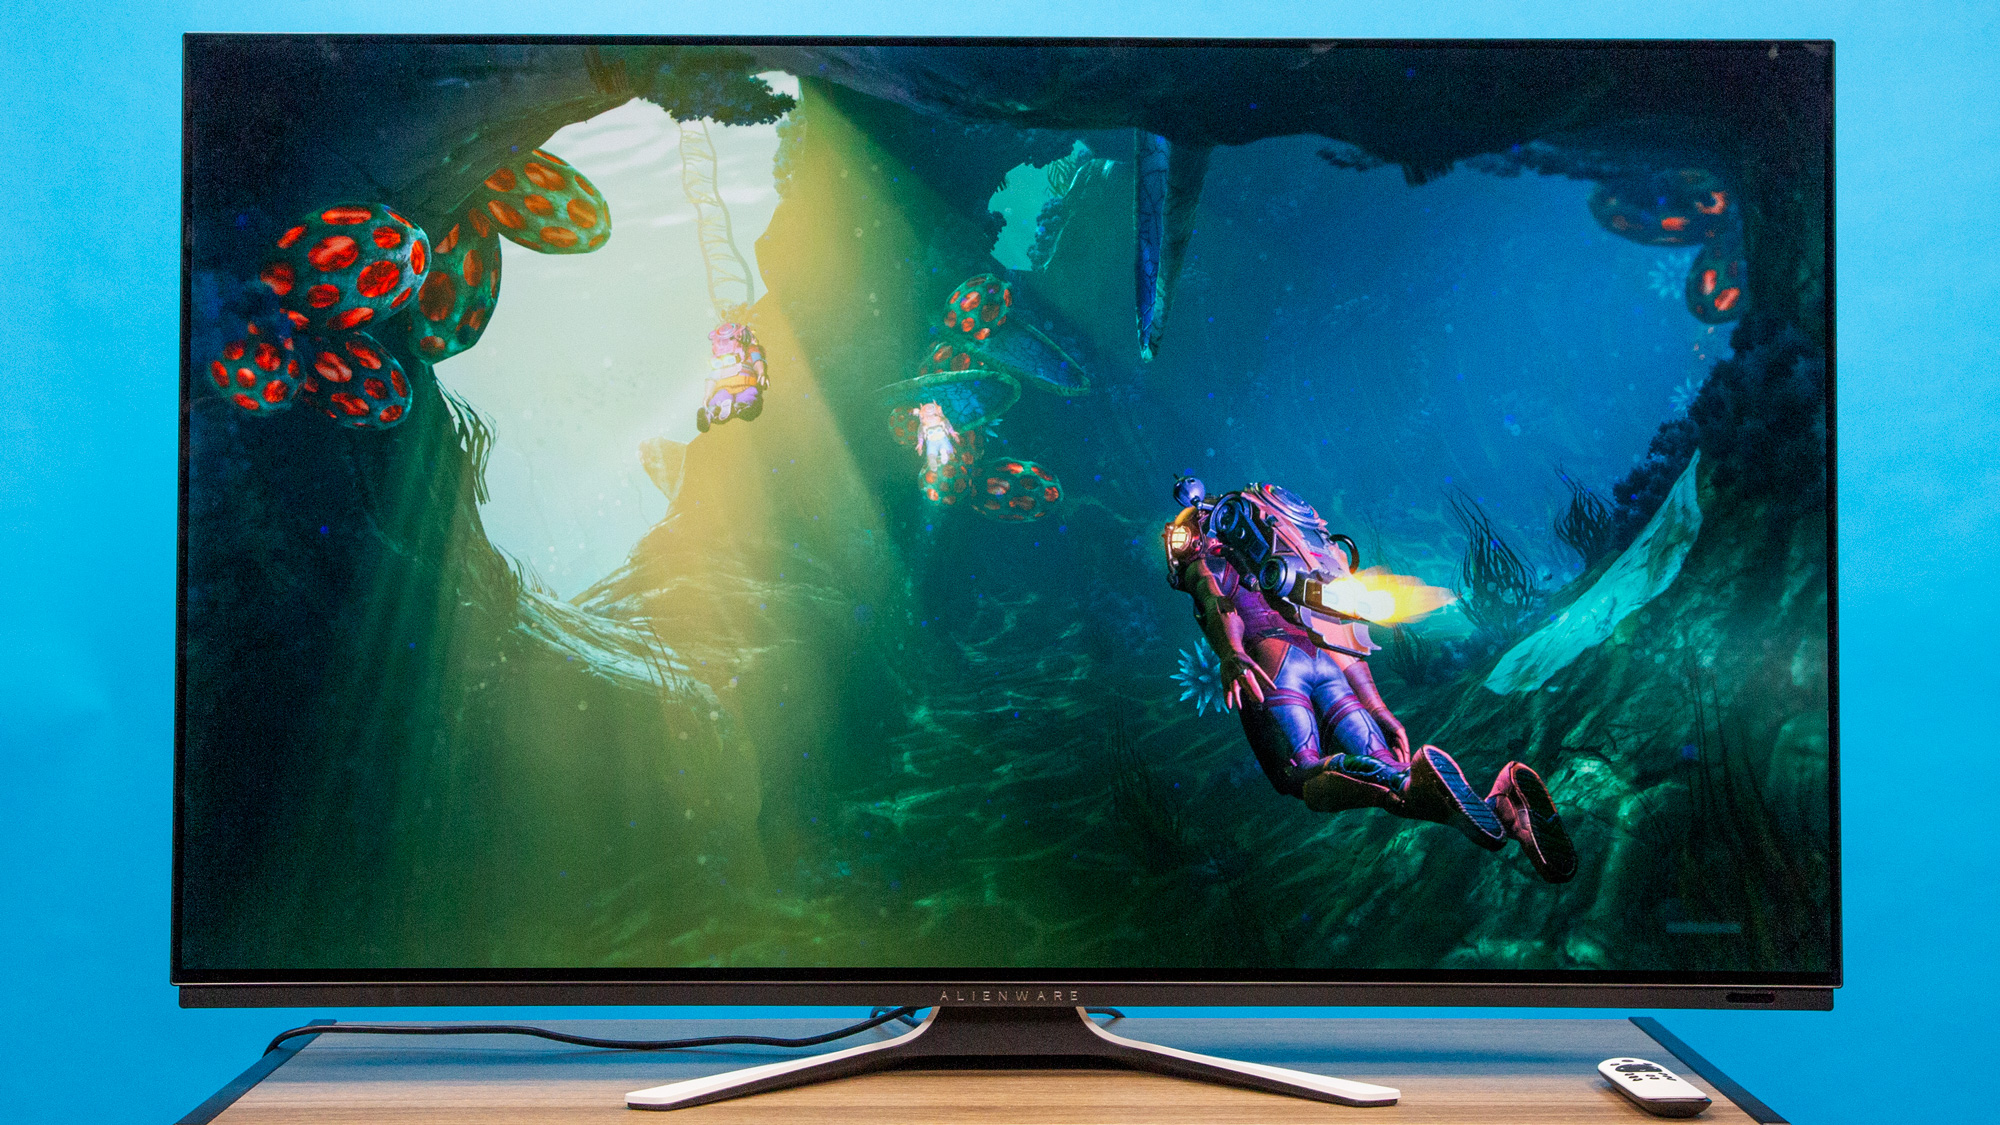 Best gaming monitors: Alienware AW5520QF